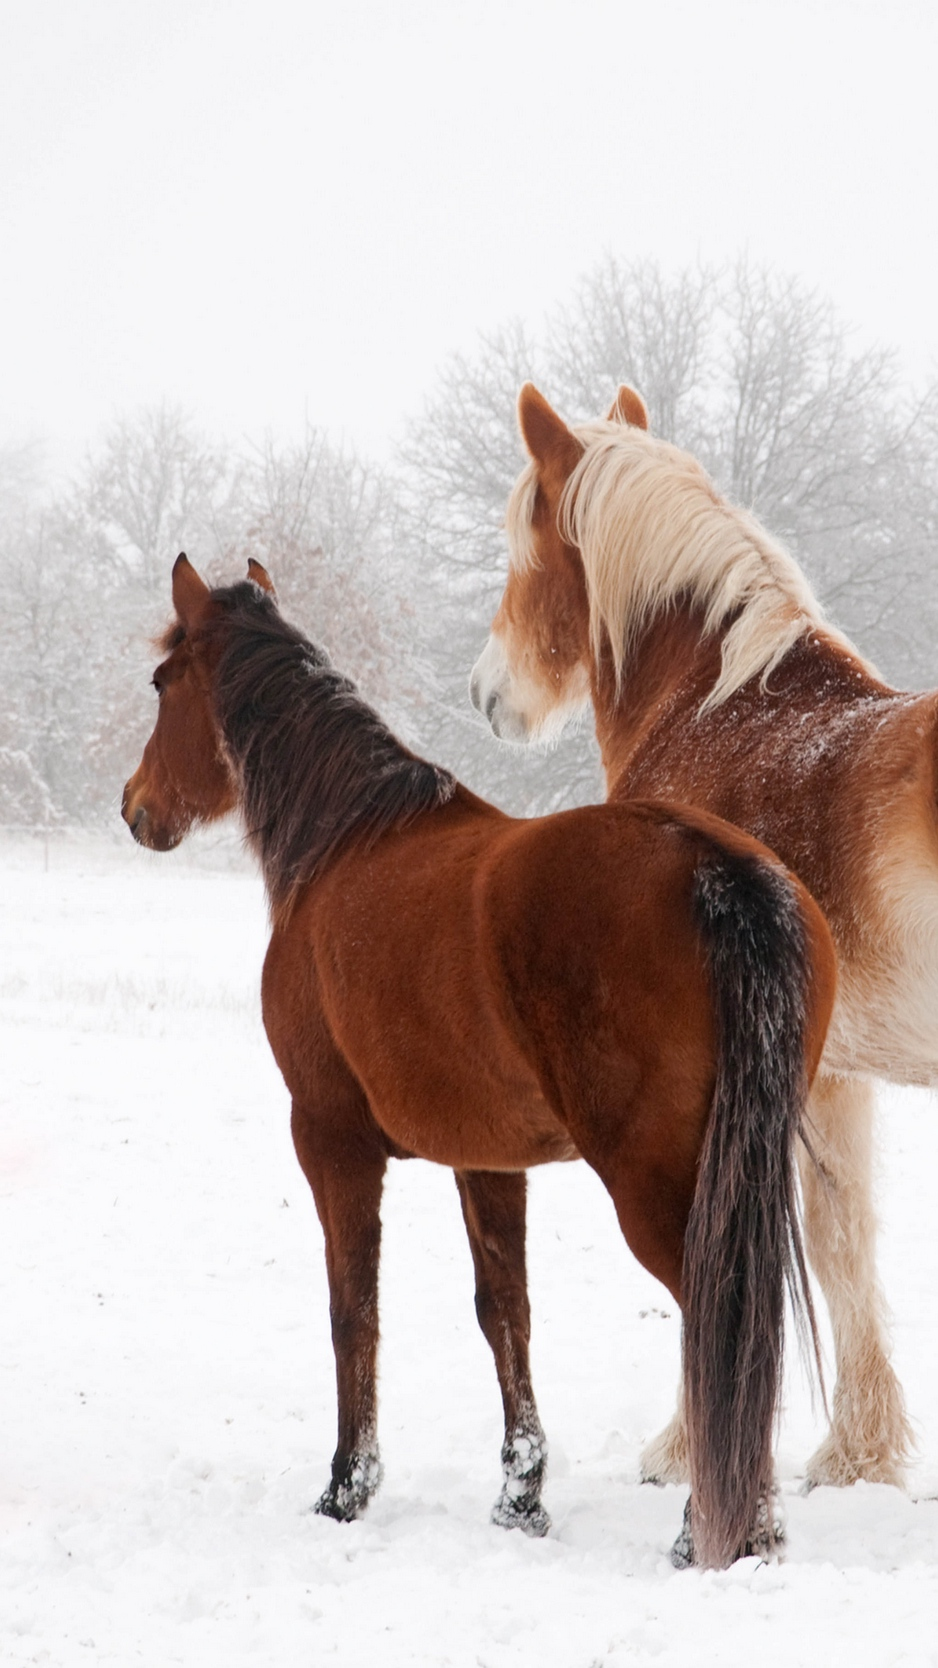 Wallpaper Horse Winter Snow Couple Horse Wallpapers Hd Iphone 1964065 Hd Wallpaper Backgrounds Download